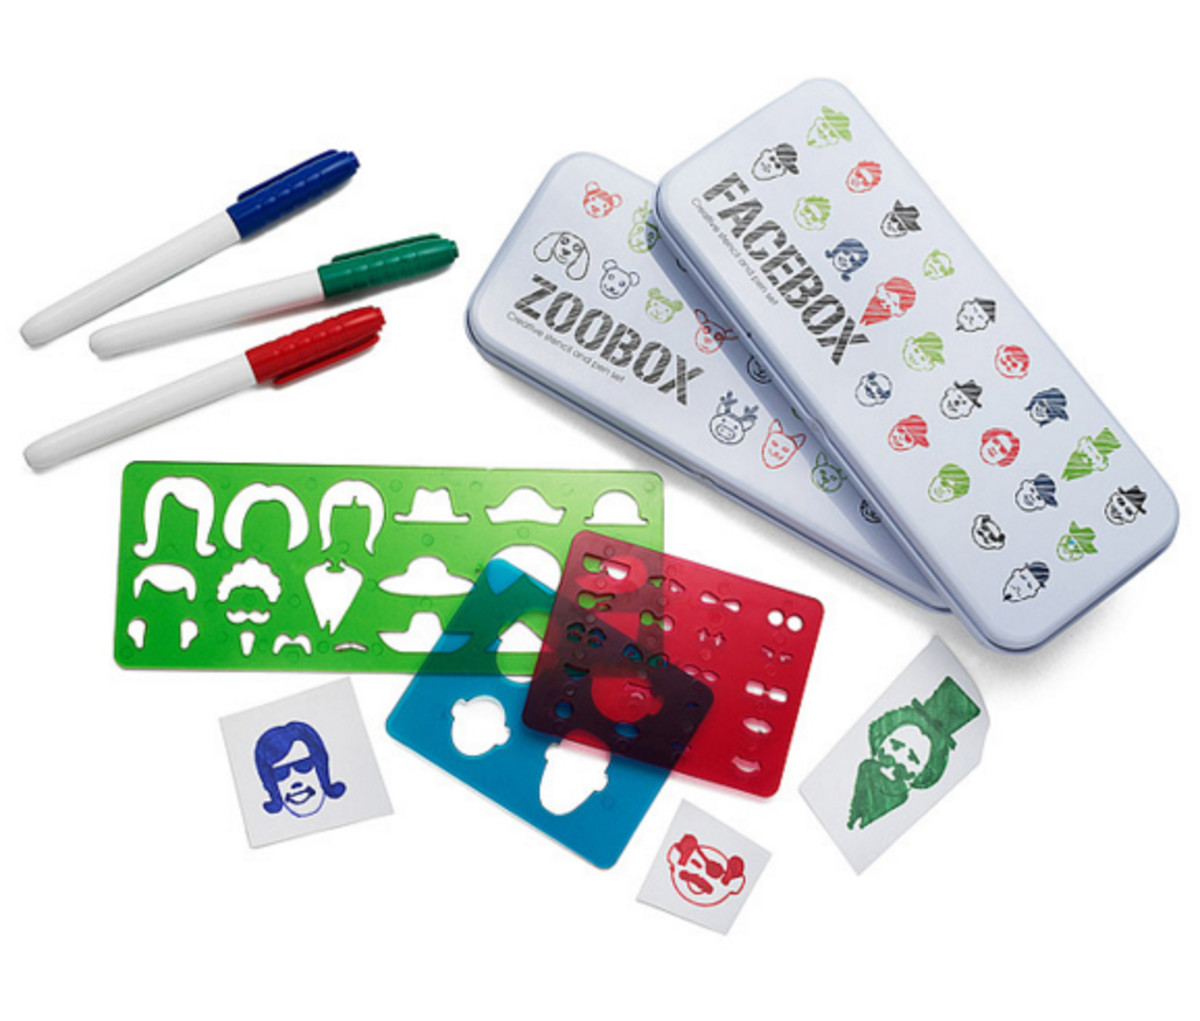 awesome stocking stuffers stencil and pen kits